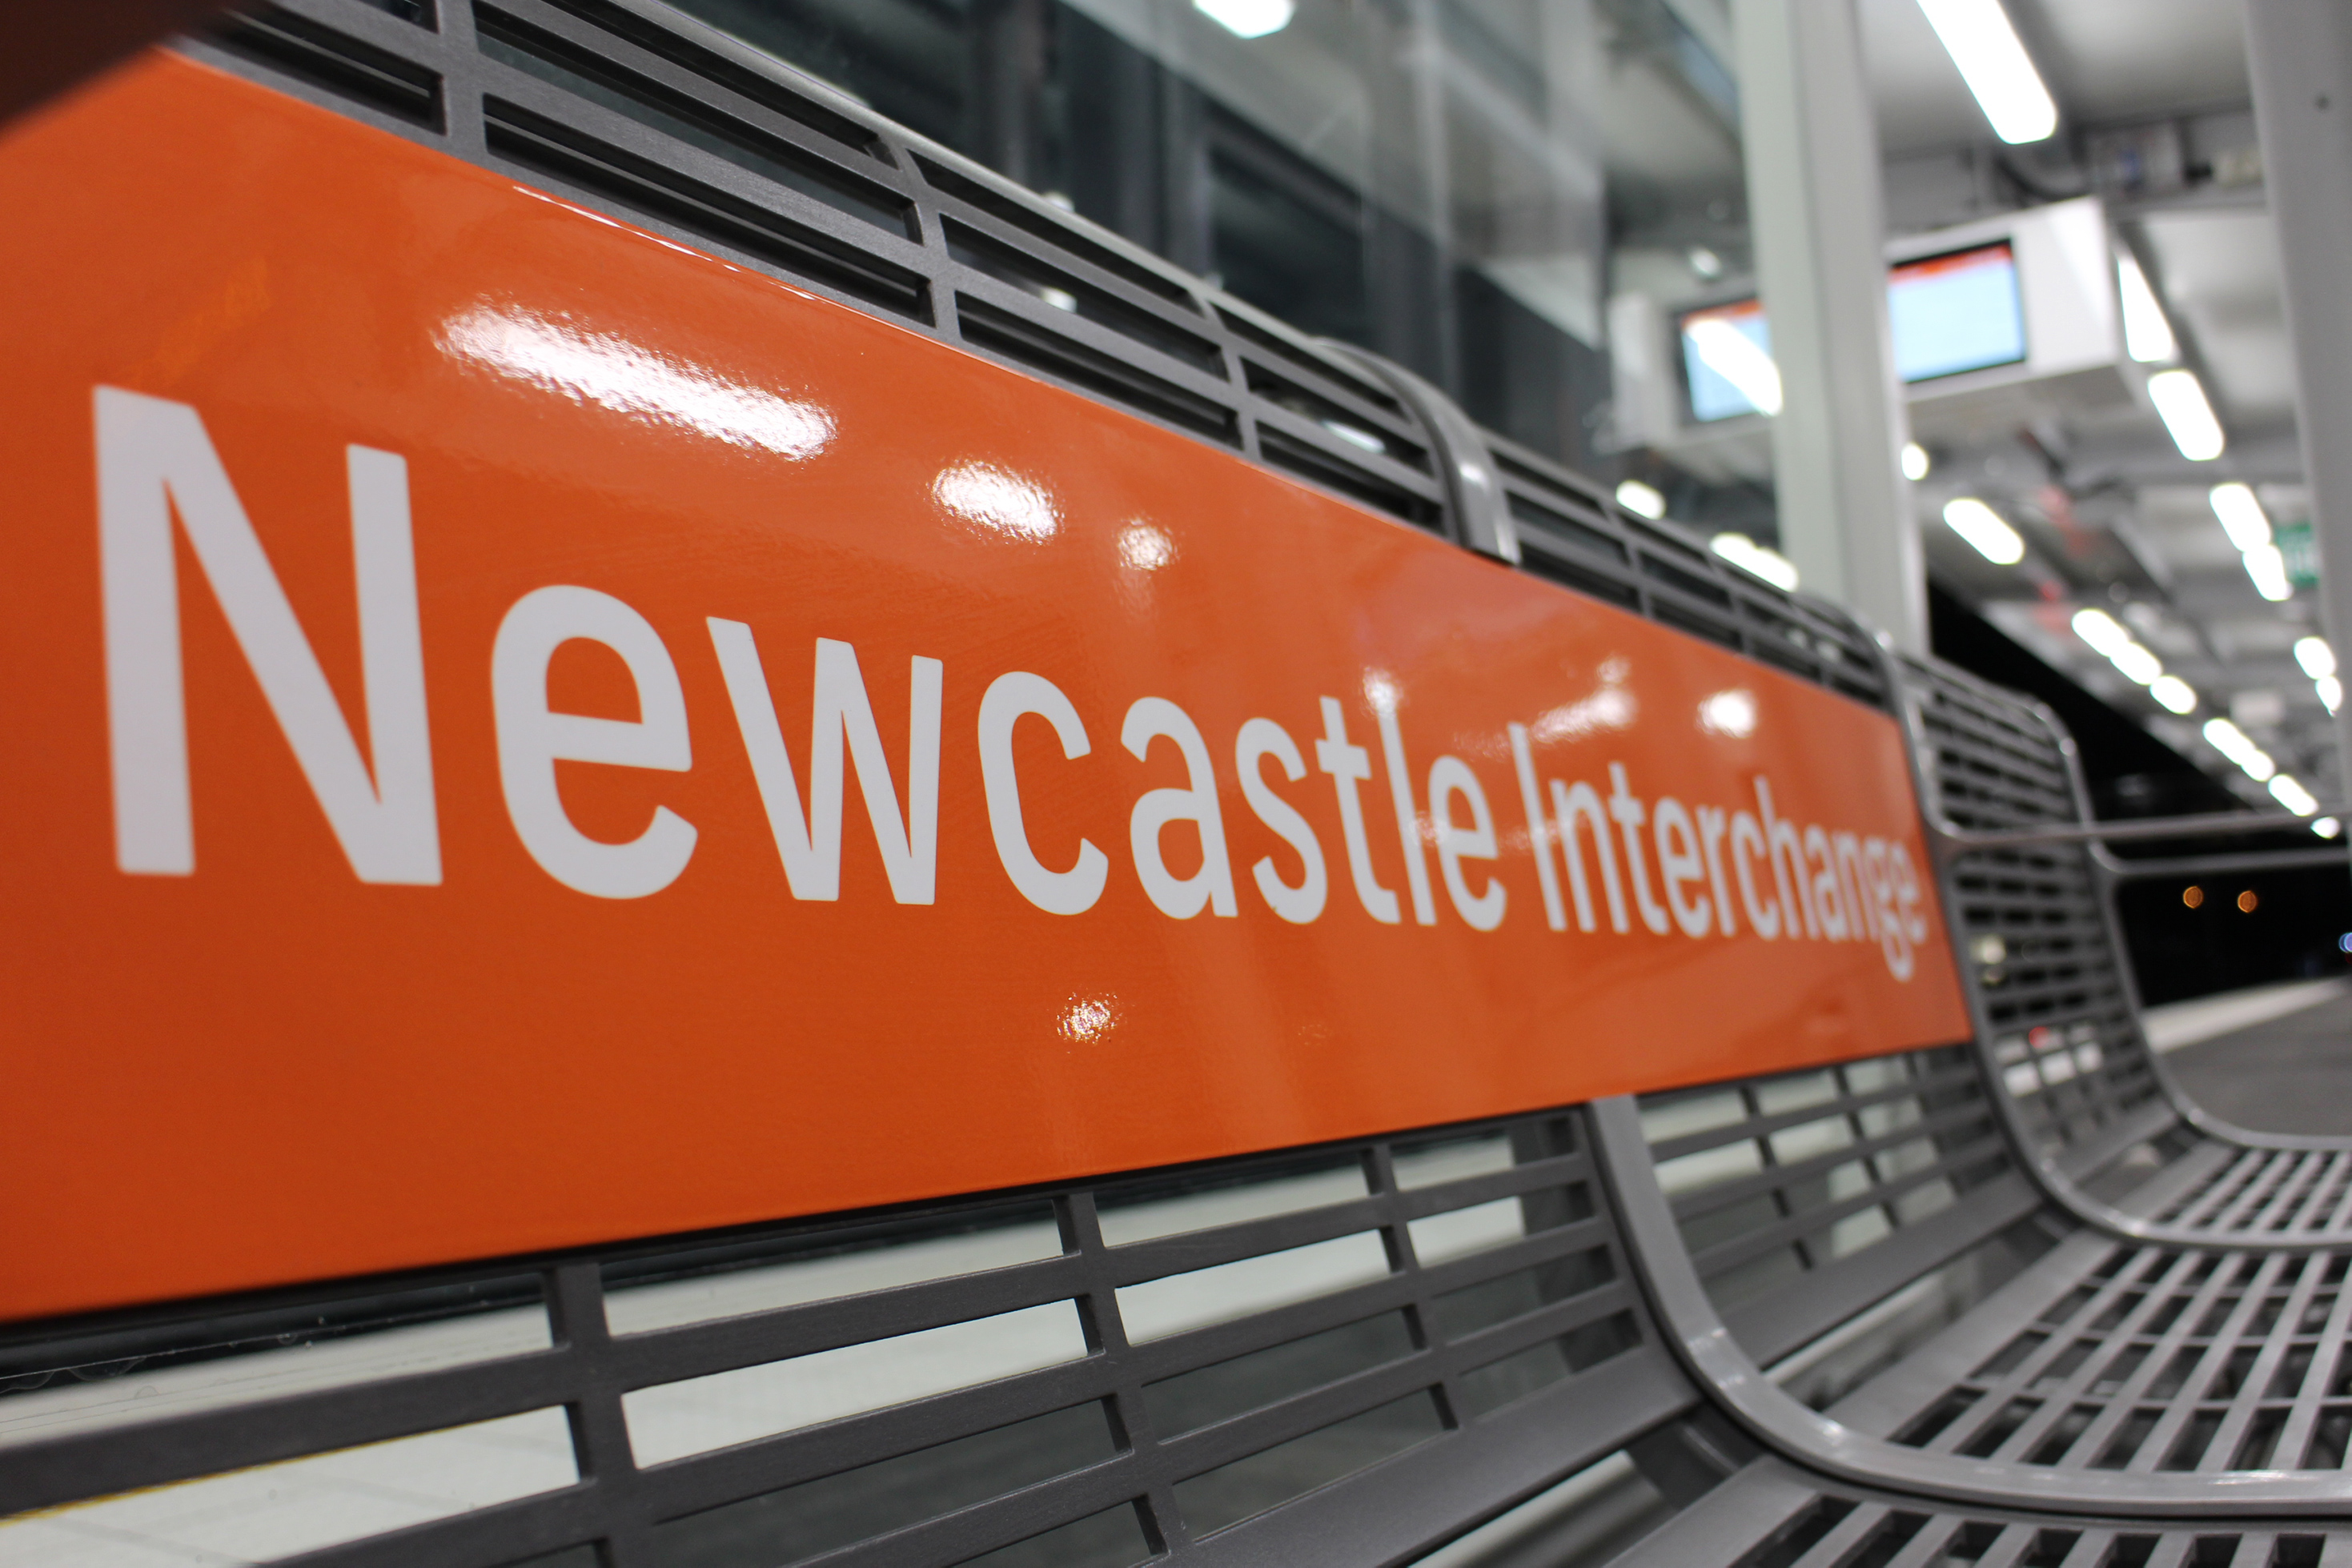 Picture of Newcastle Interchange sign